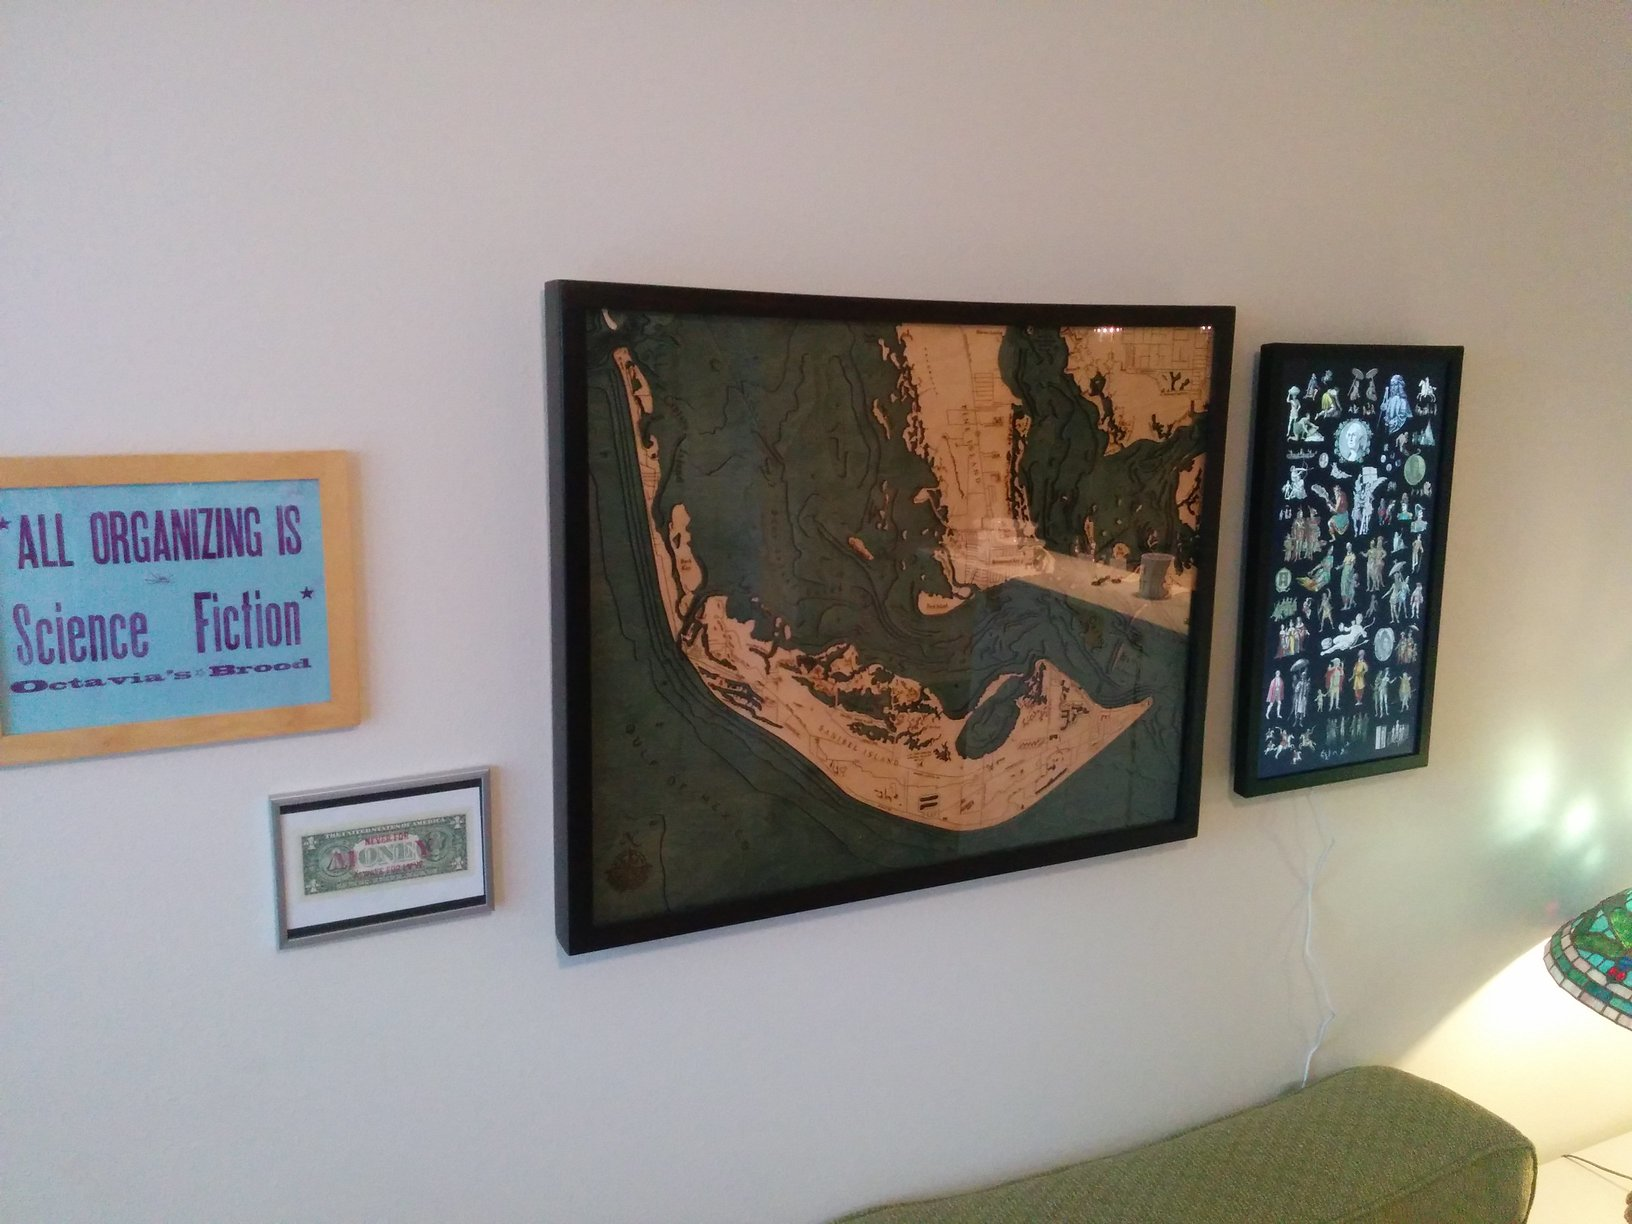 hack your eo1 picture of eo1 in our living room next to framed art